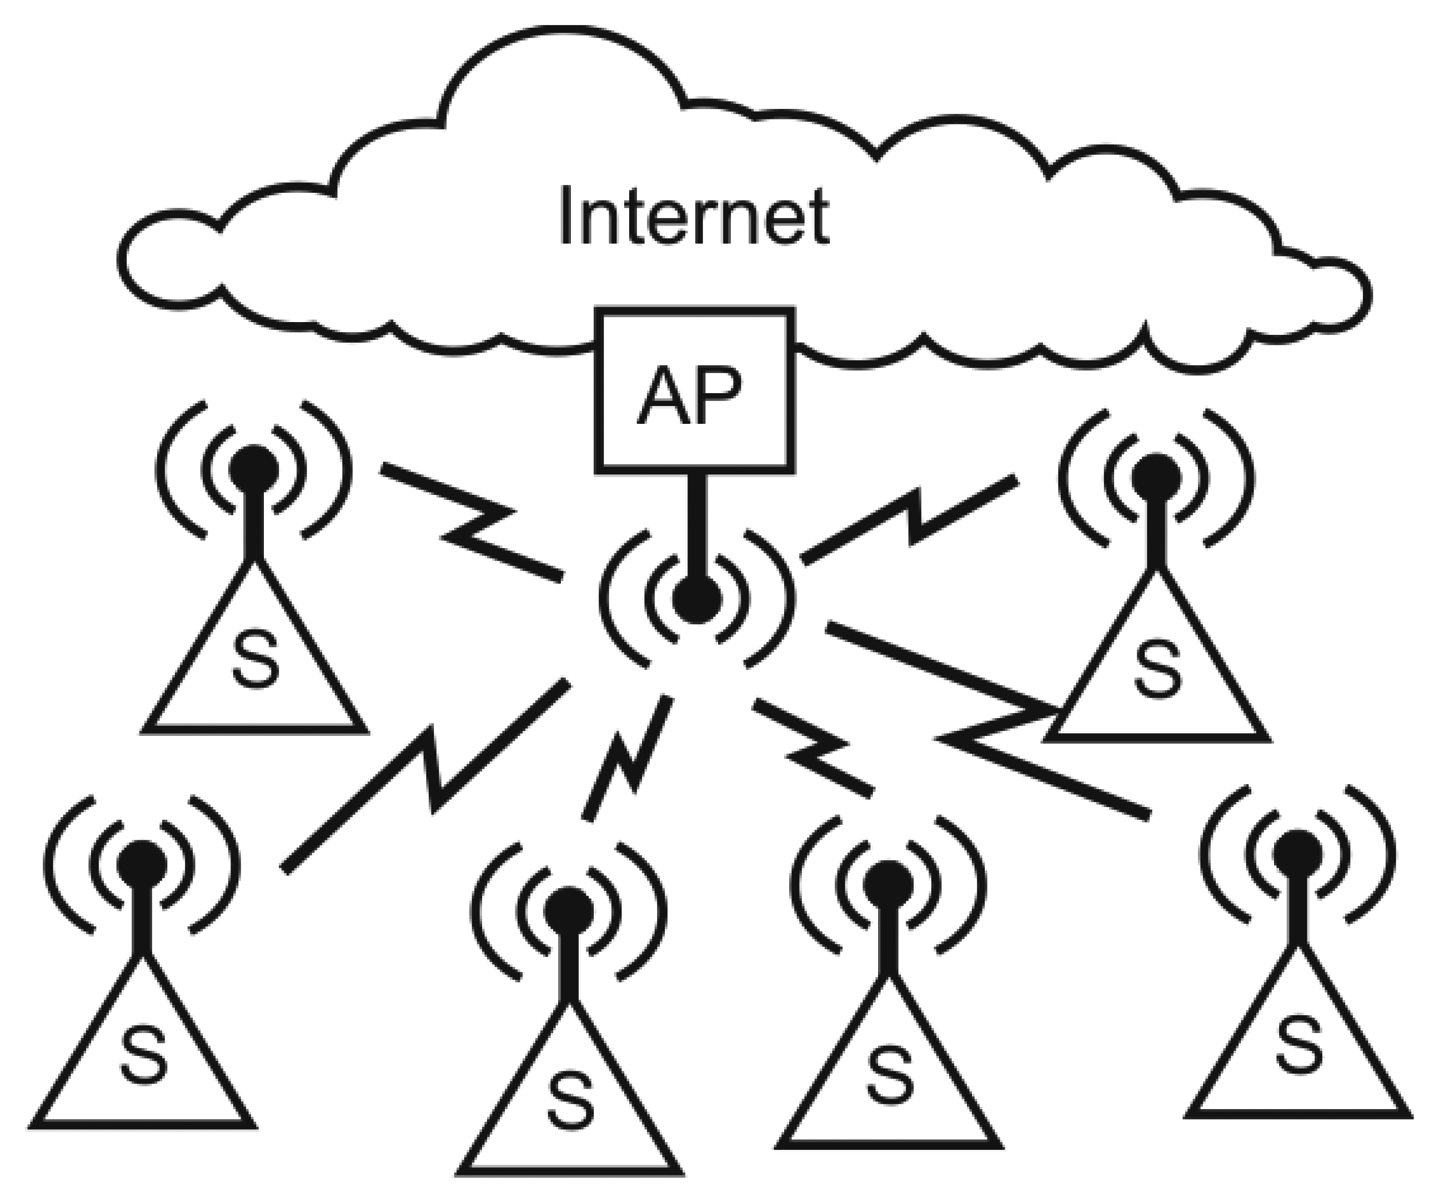 internet setup wiring diagram database AT&T Uverse Cable Box sensors free full text application of service oriented internet icon setup internet setup